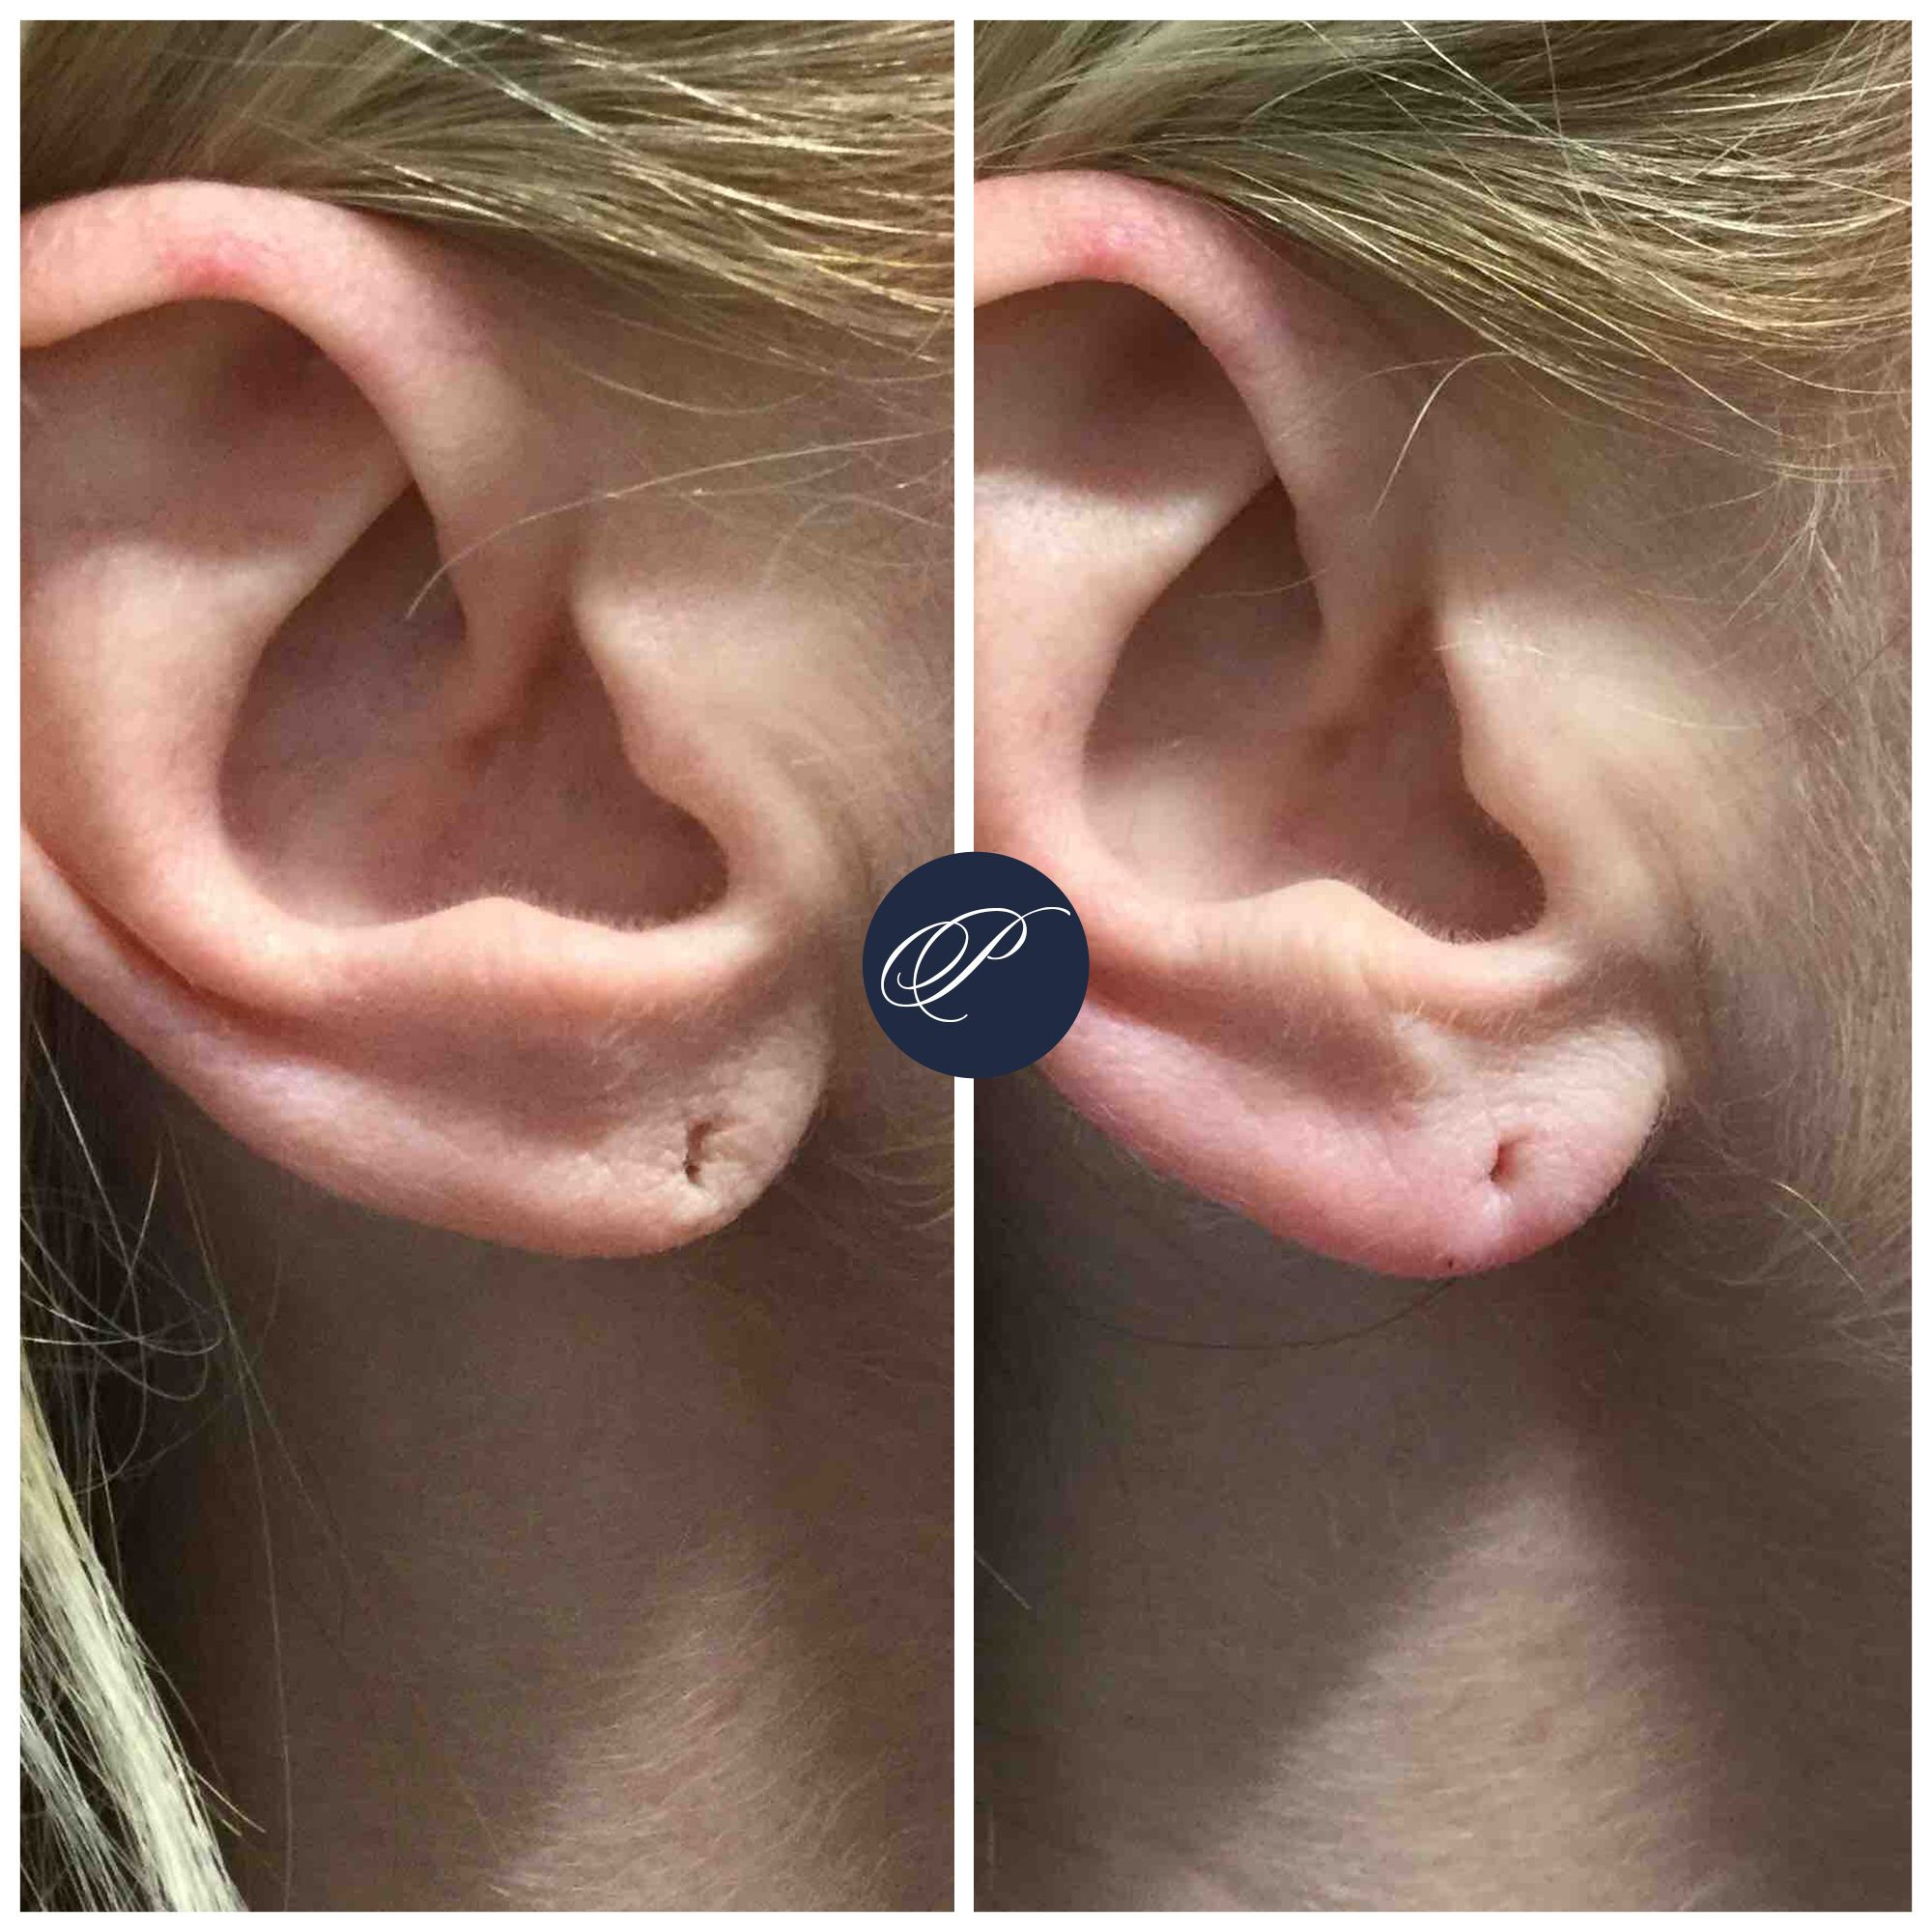 Fillers are great for repairing earlobes. By adding volume